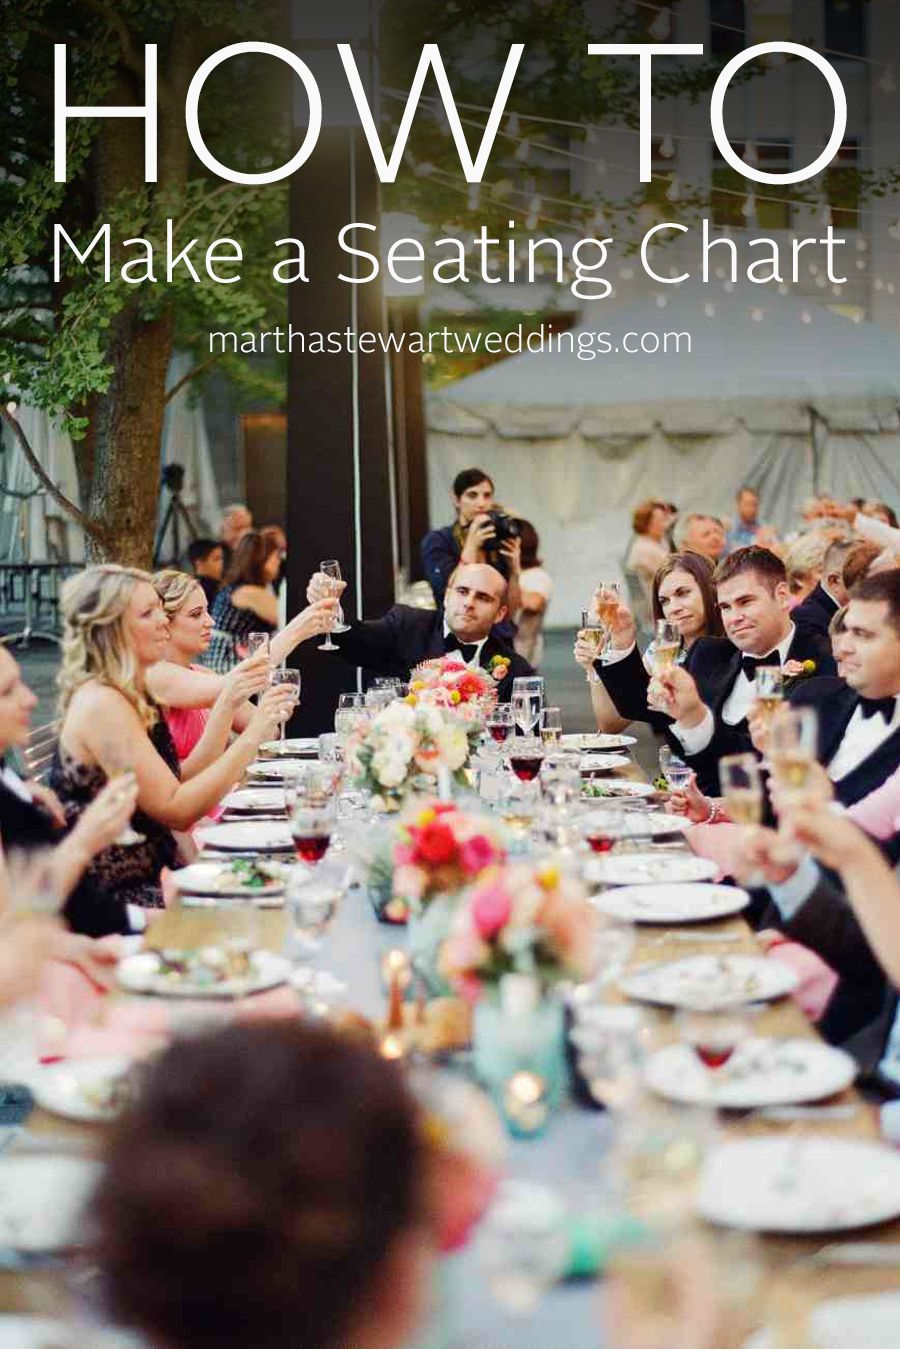 How to make  seating chart martha stewart weddings also wedding without stressing out rh pinterest